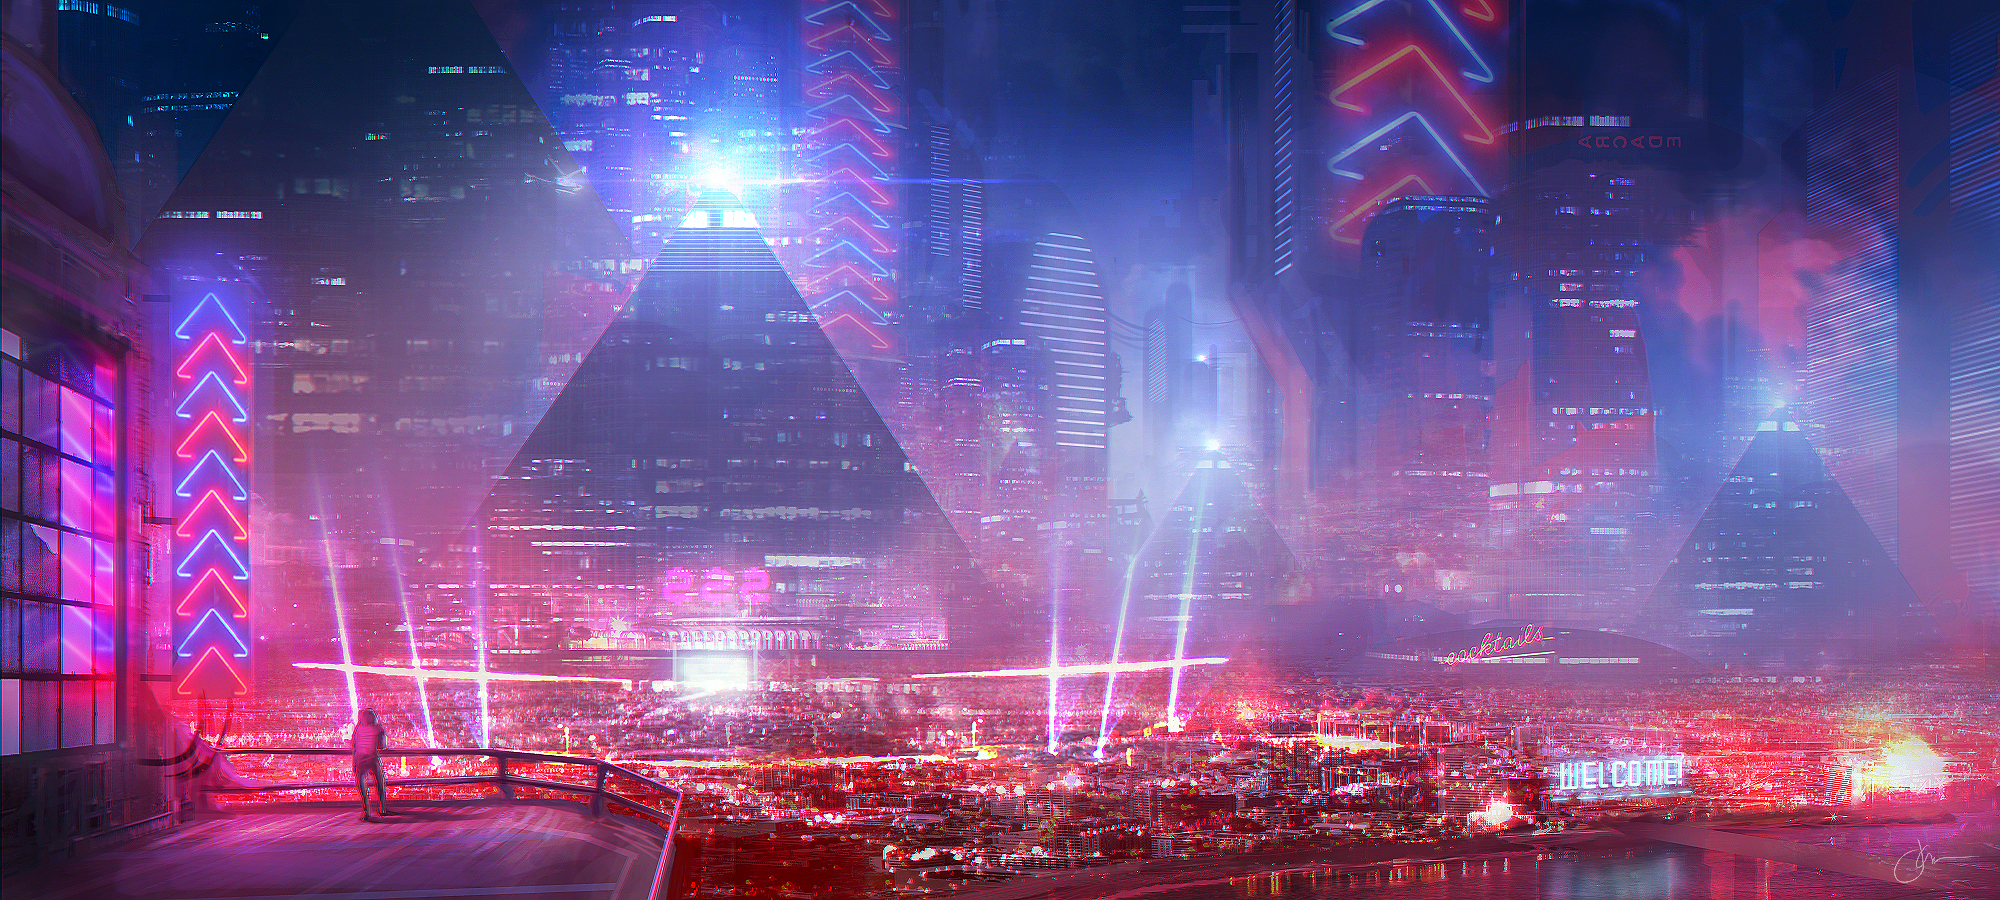 neon city Wallpaper and Background Image | 2000x900 | ID ...